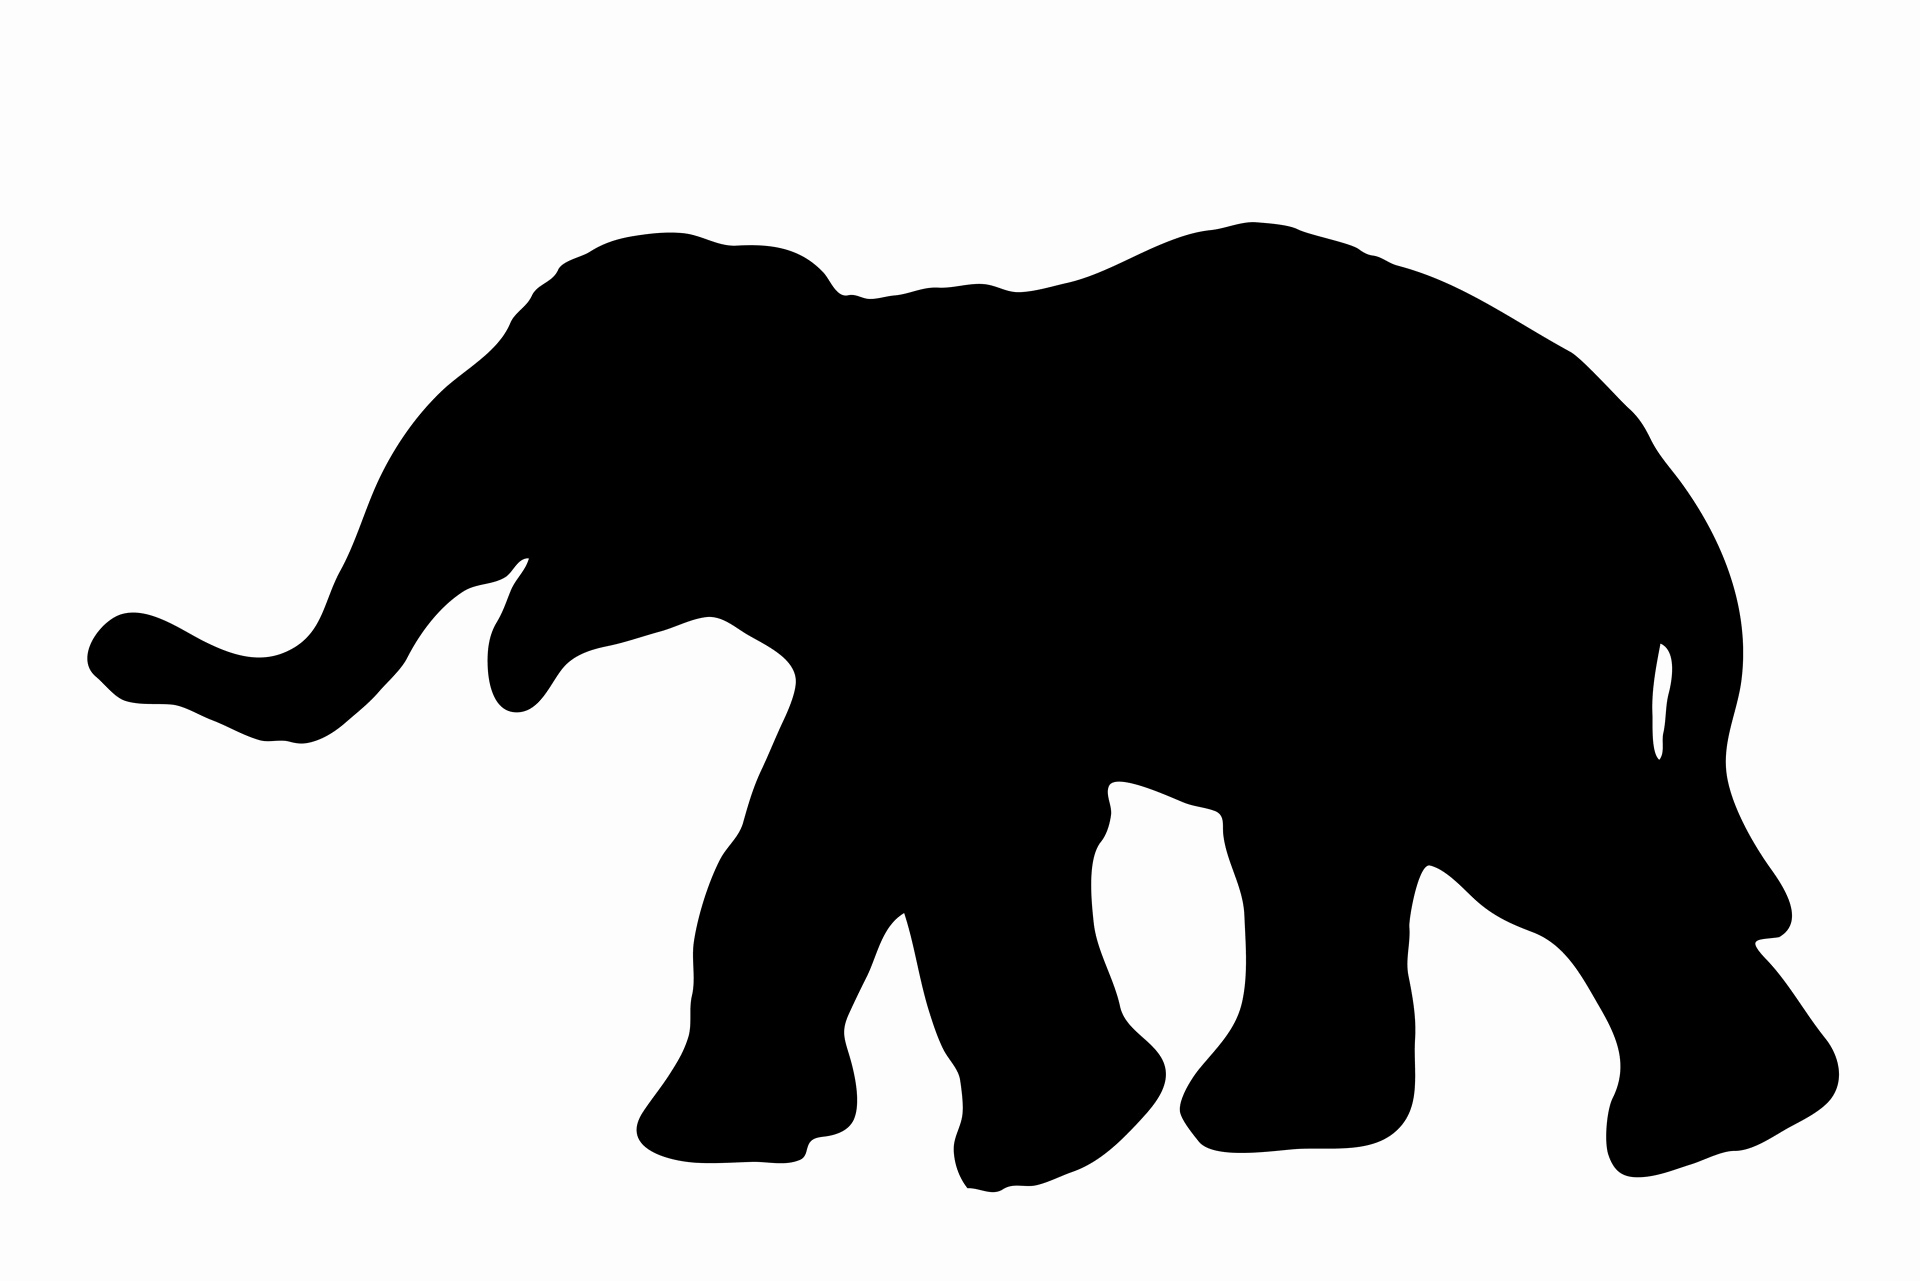 1920x1281 Elephant With Trunk Up Silhouette Fresh Man With Hands Up Clipart